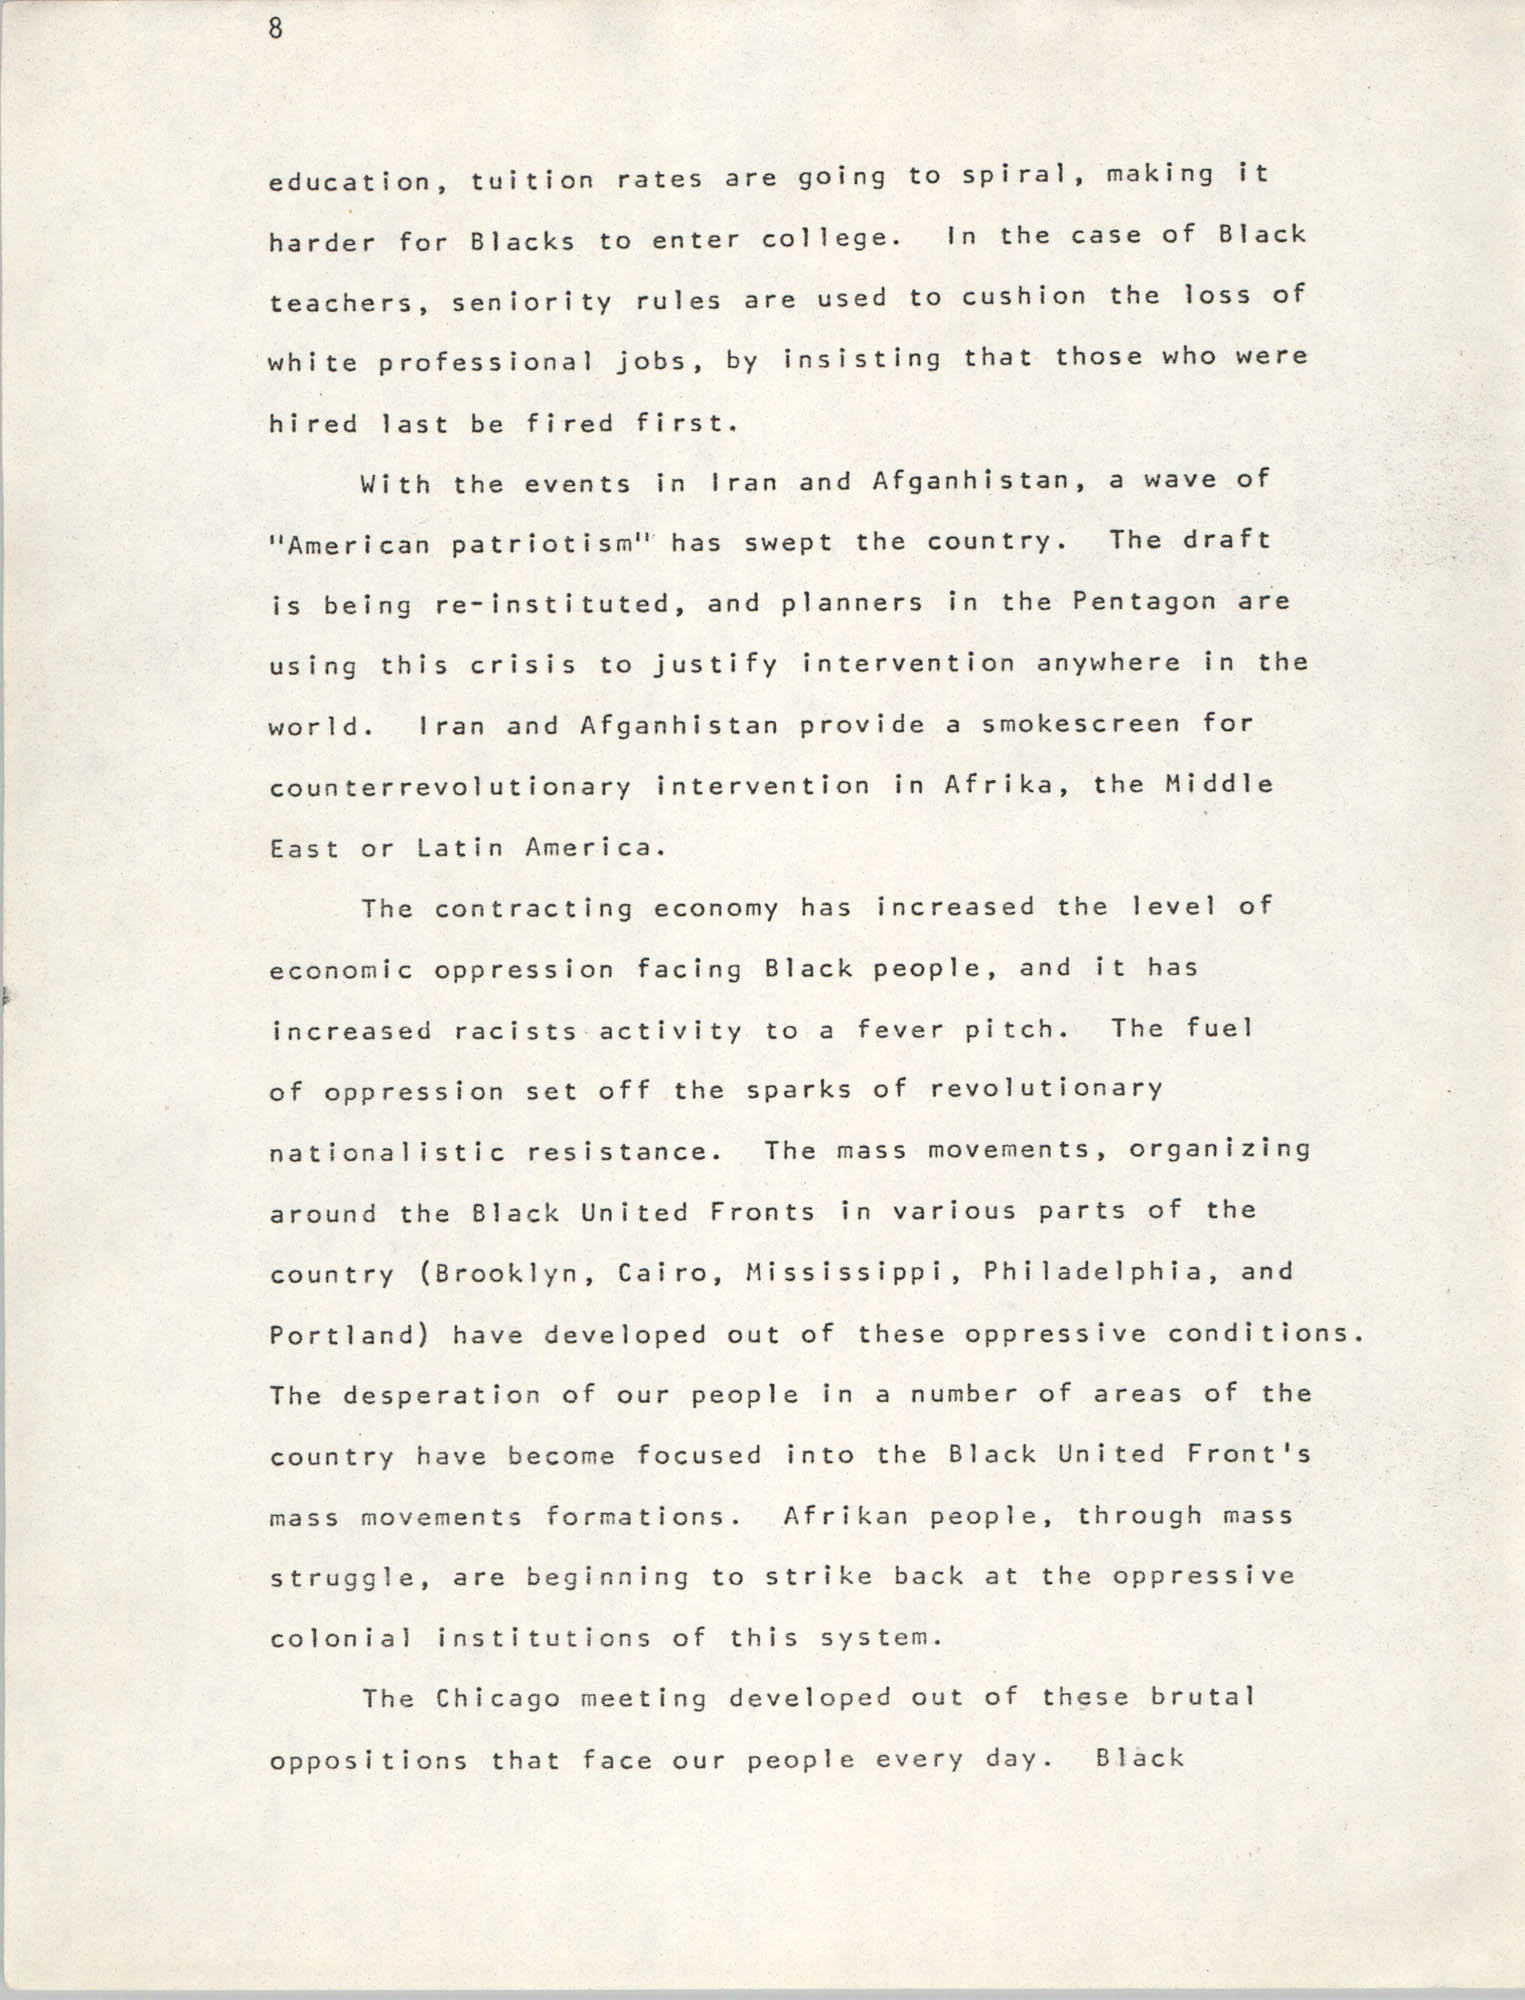 Pan-African Committee of the Black United Front, Page 8